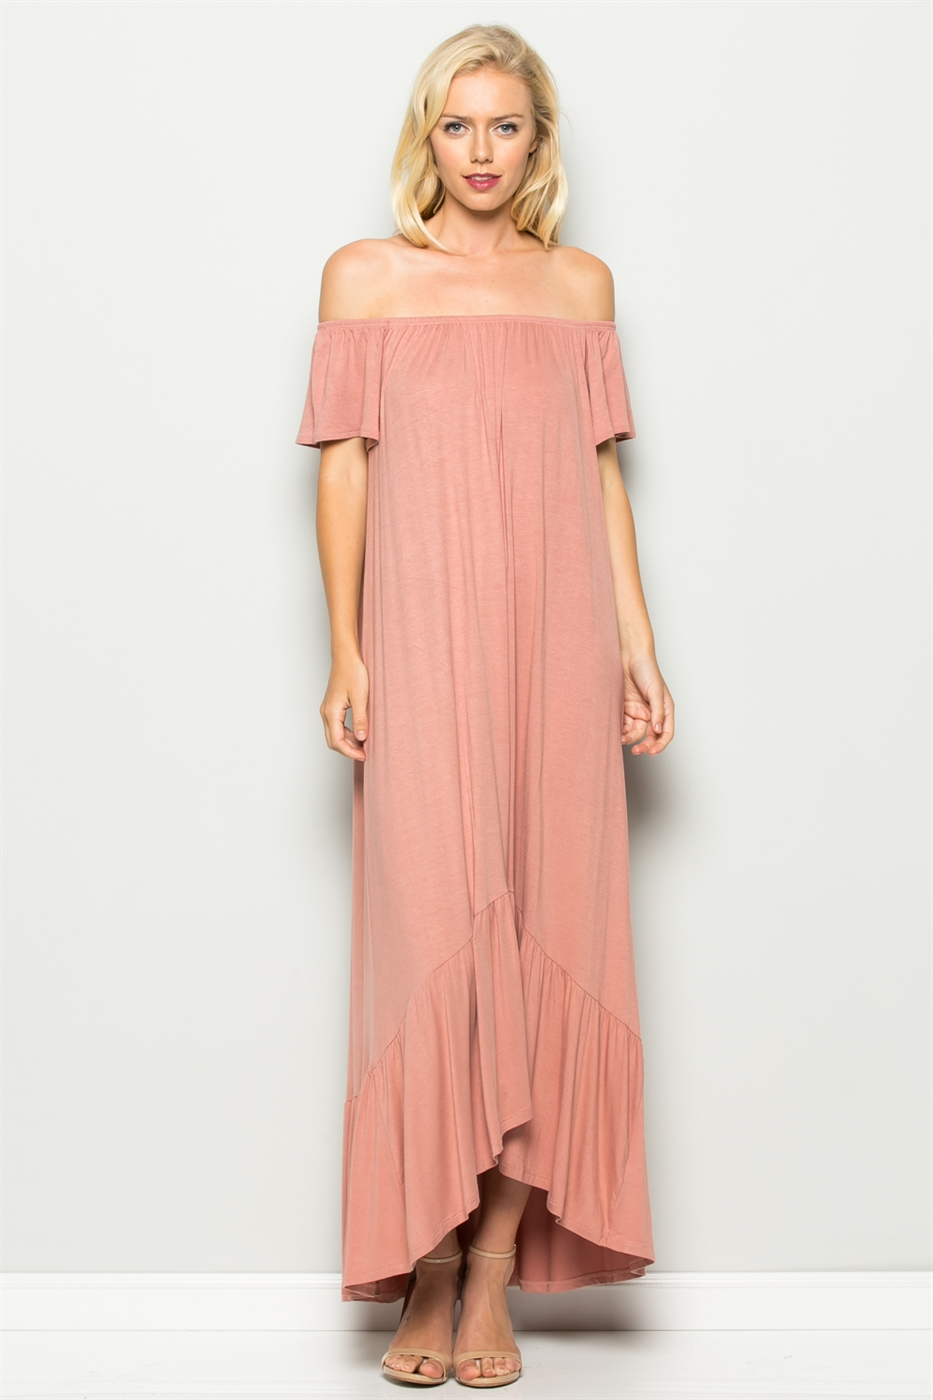 OFF SHOULDER RUFFLE DRESS - orangeshine.com